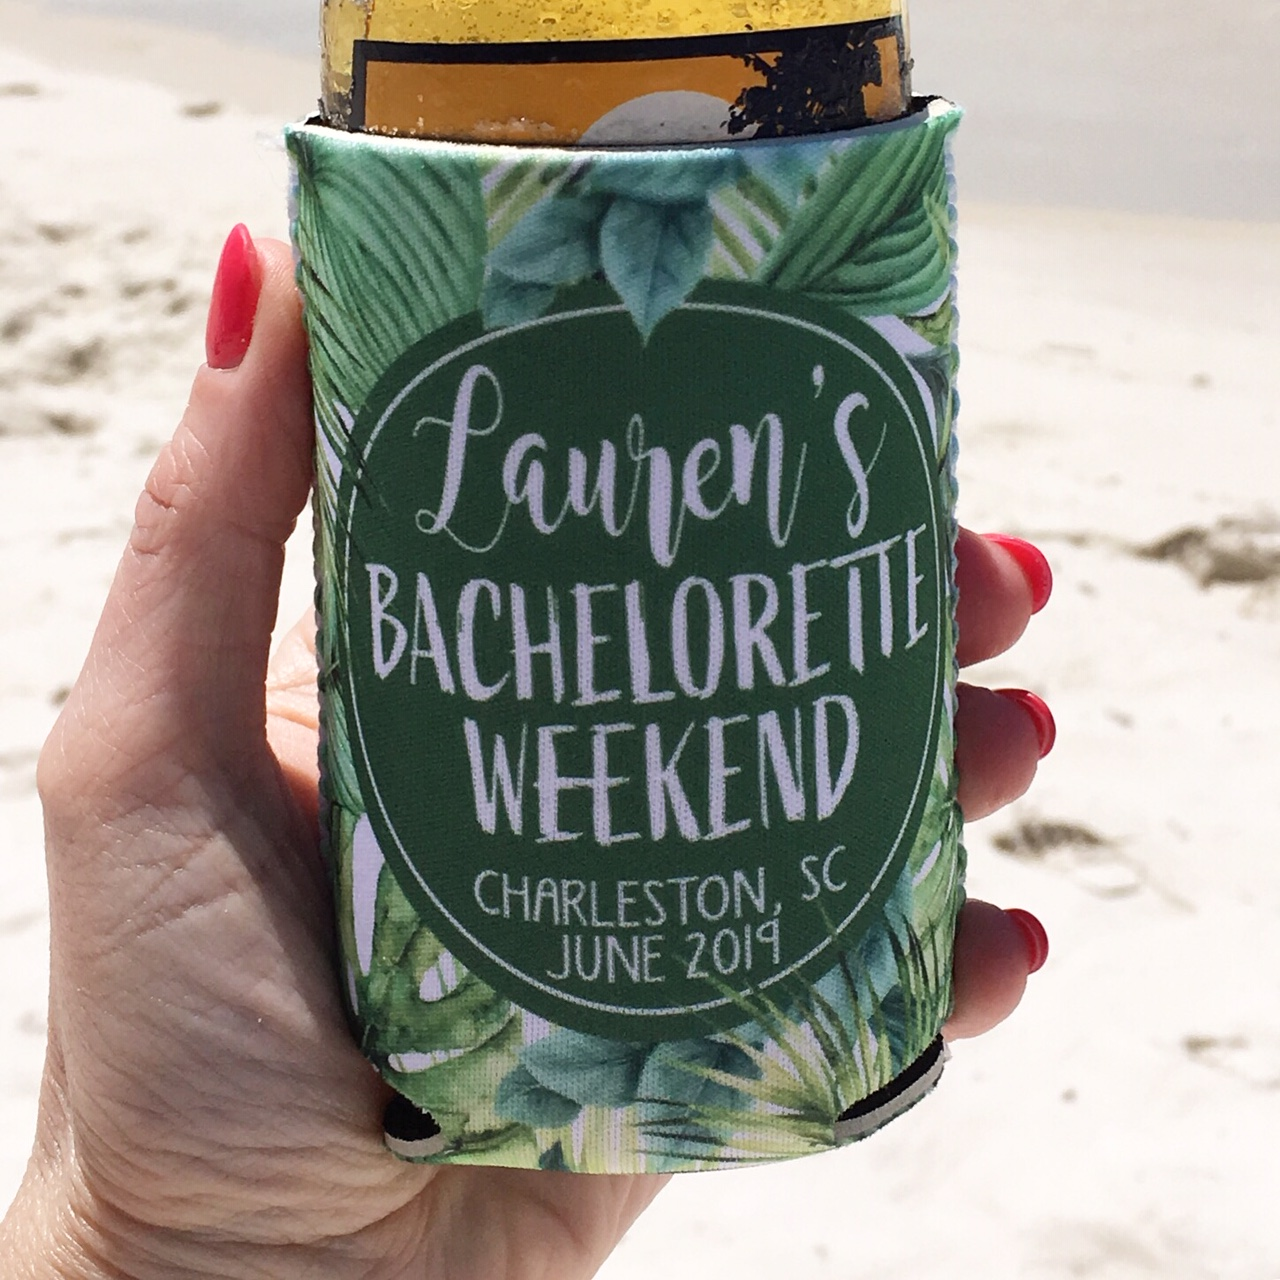 Beach Bachelorette Vacation Koozies or coolies - Tropical 2 - Hand